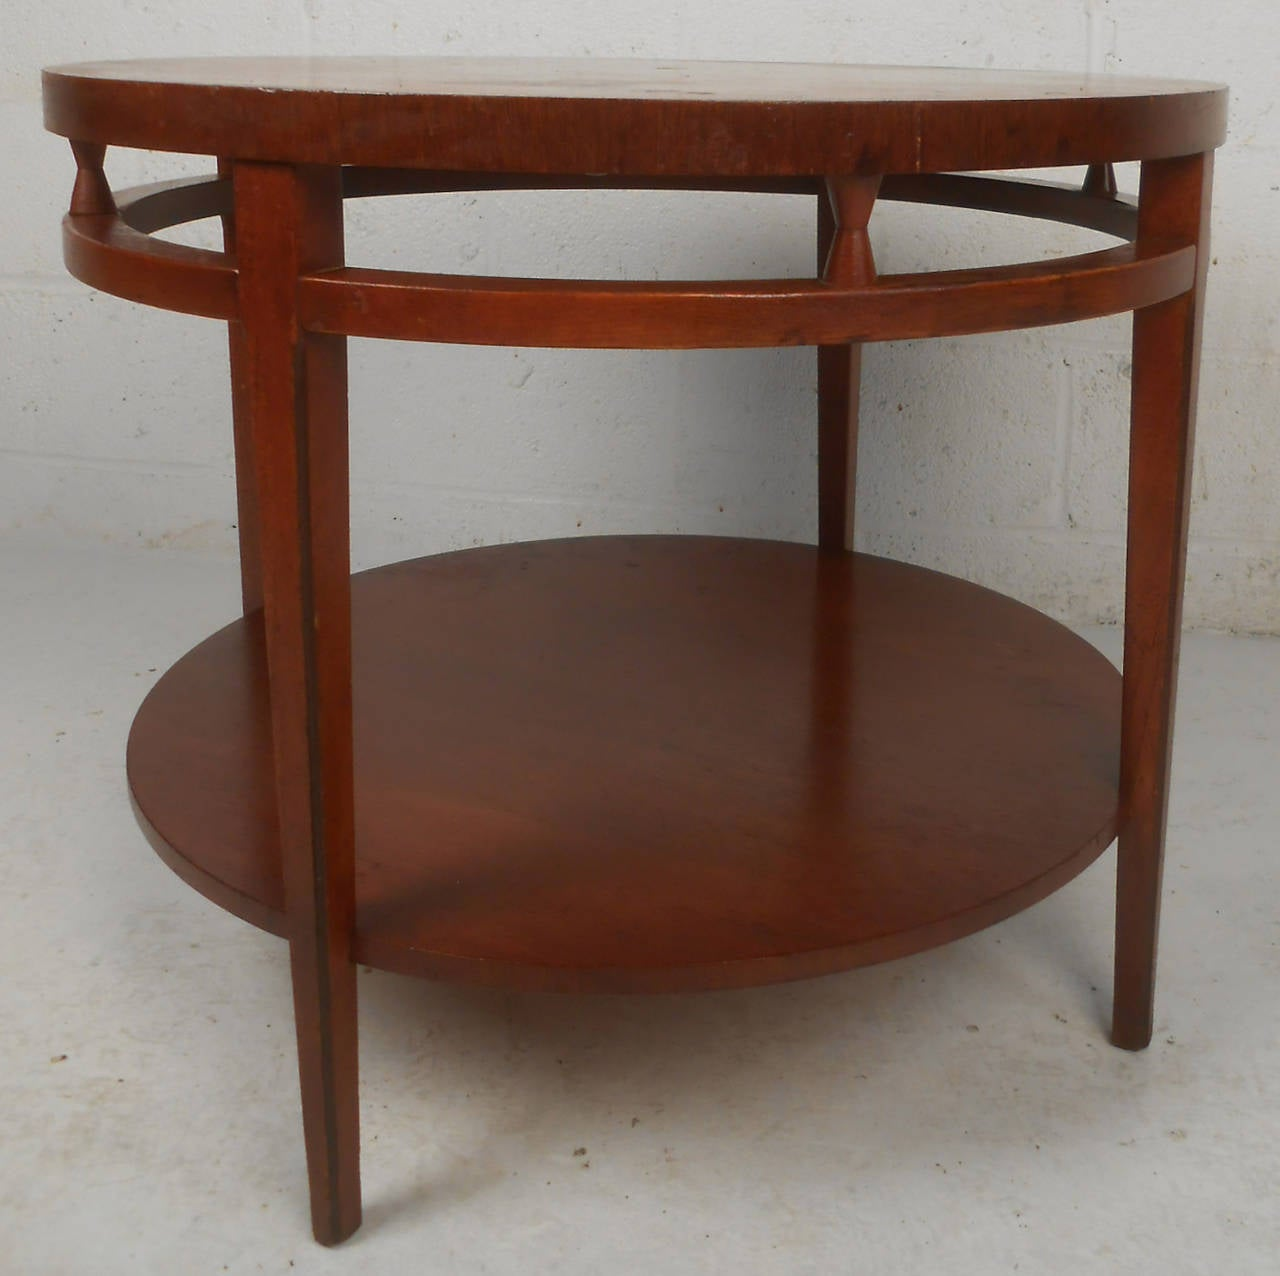 Vintage Mid Century Modern Small Coffee Table Cocktail: Midcentury Lane Style Two-Tier Round Coffee Table For Sale